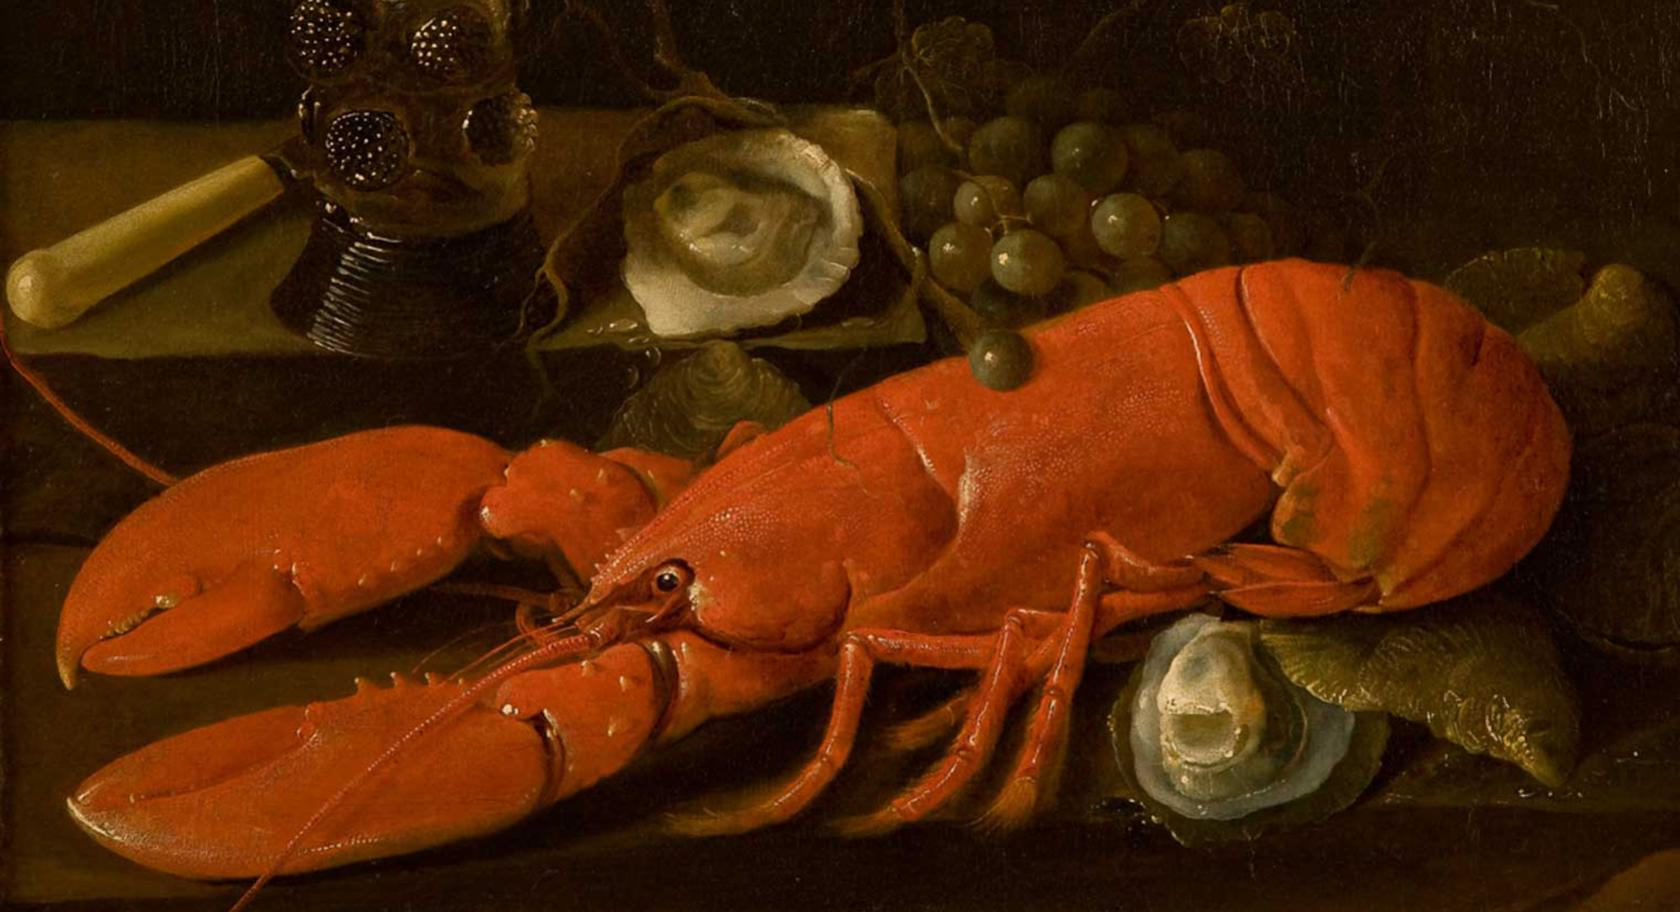 Abraham Susenier (Dutch, ca. 1620-1668), Still Life with a Lobster, Römer, Oysters, Grapes, and a Knife,ca. 1660s, oil on canvas, 21 x 25 1/2 in., purchased with funds from the Emma Eccles Jones Foundation, conserved with funds from the Ann K. Stewart Docent and Volunteer Conservation Fund, UMFA2003.34.1